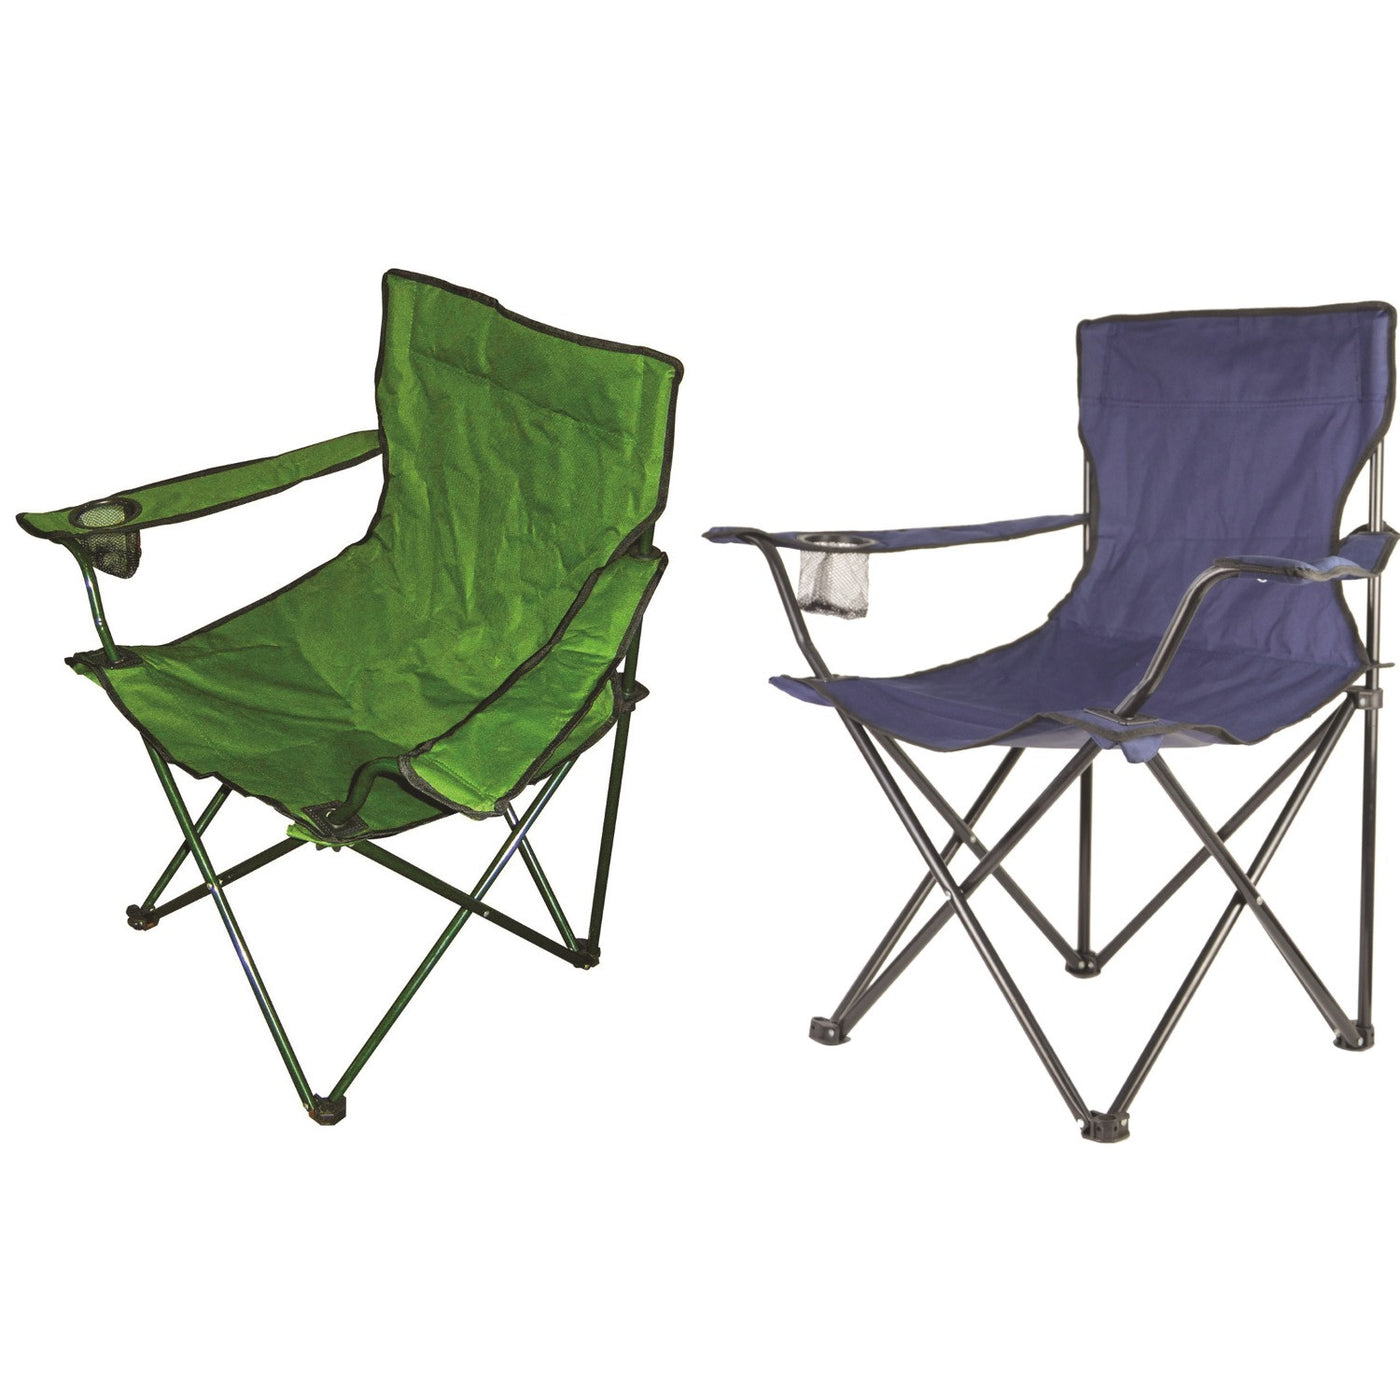 Swell Redwood Leisure Folding Canvas Chair Blue Or Green Download Free Architecture Designs Scobabritishbridgeorg